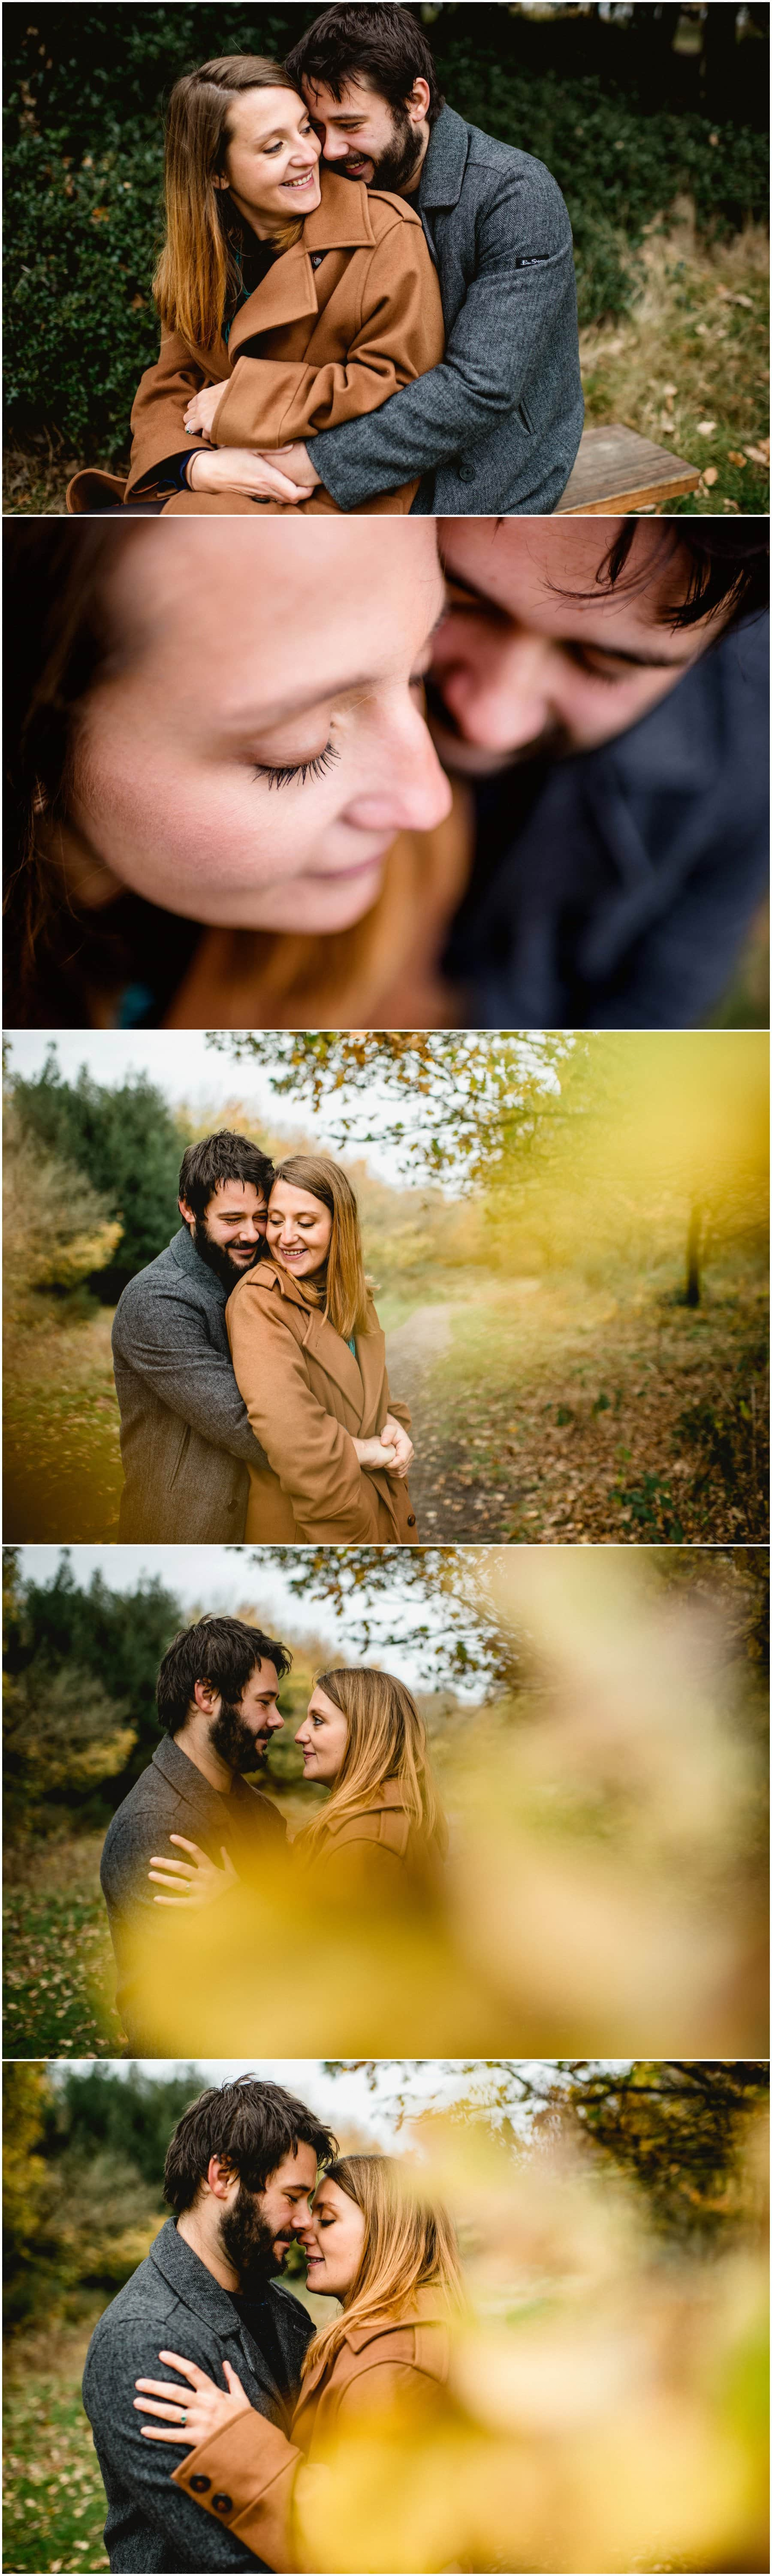 Engagement Shoot in Sutton Park, Sutton Coldfield with Jenna and Ben ahead of their Devon wedding at Ash Barton Estate with photos by Lisa Carpenter Photography, West Midlands and Birmingham Wedding Photographer